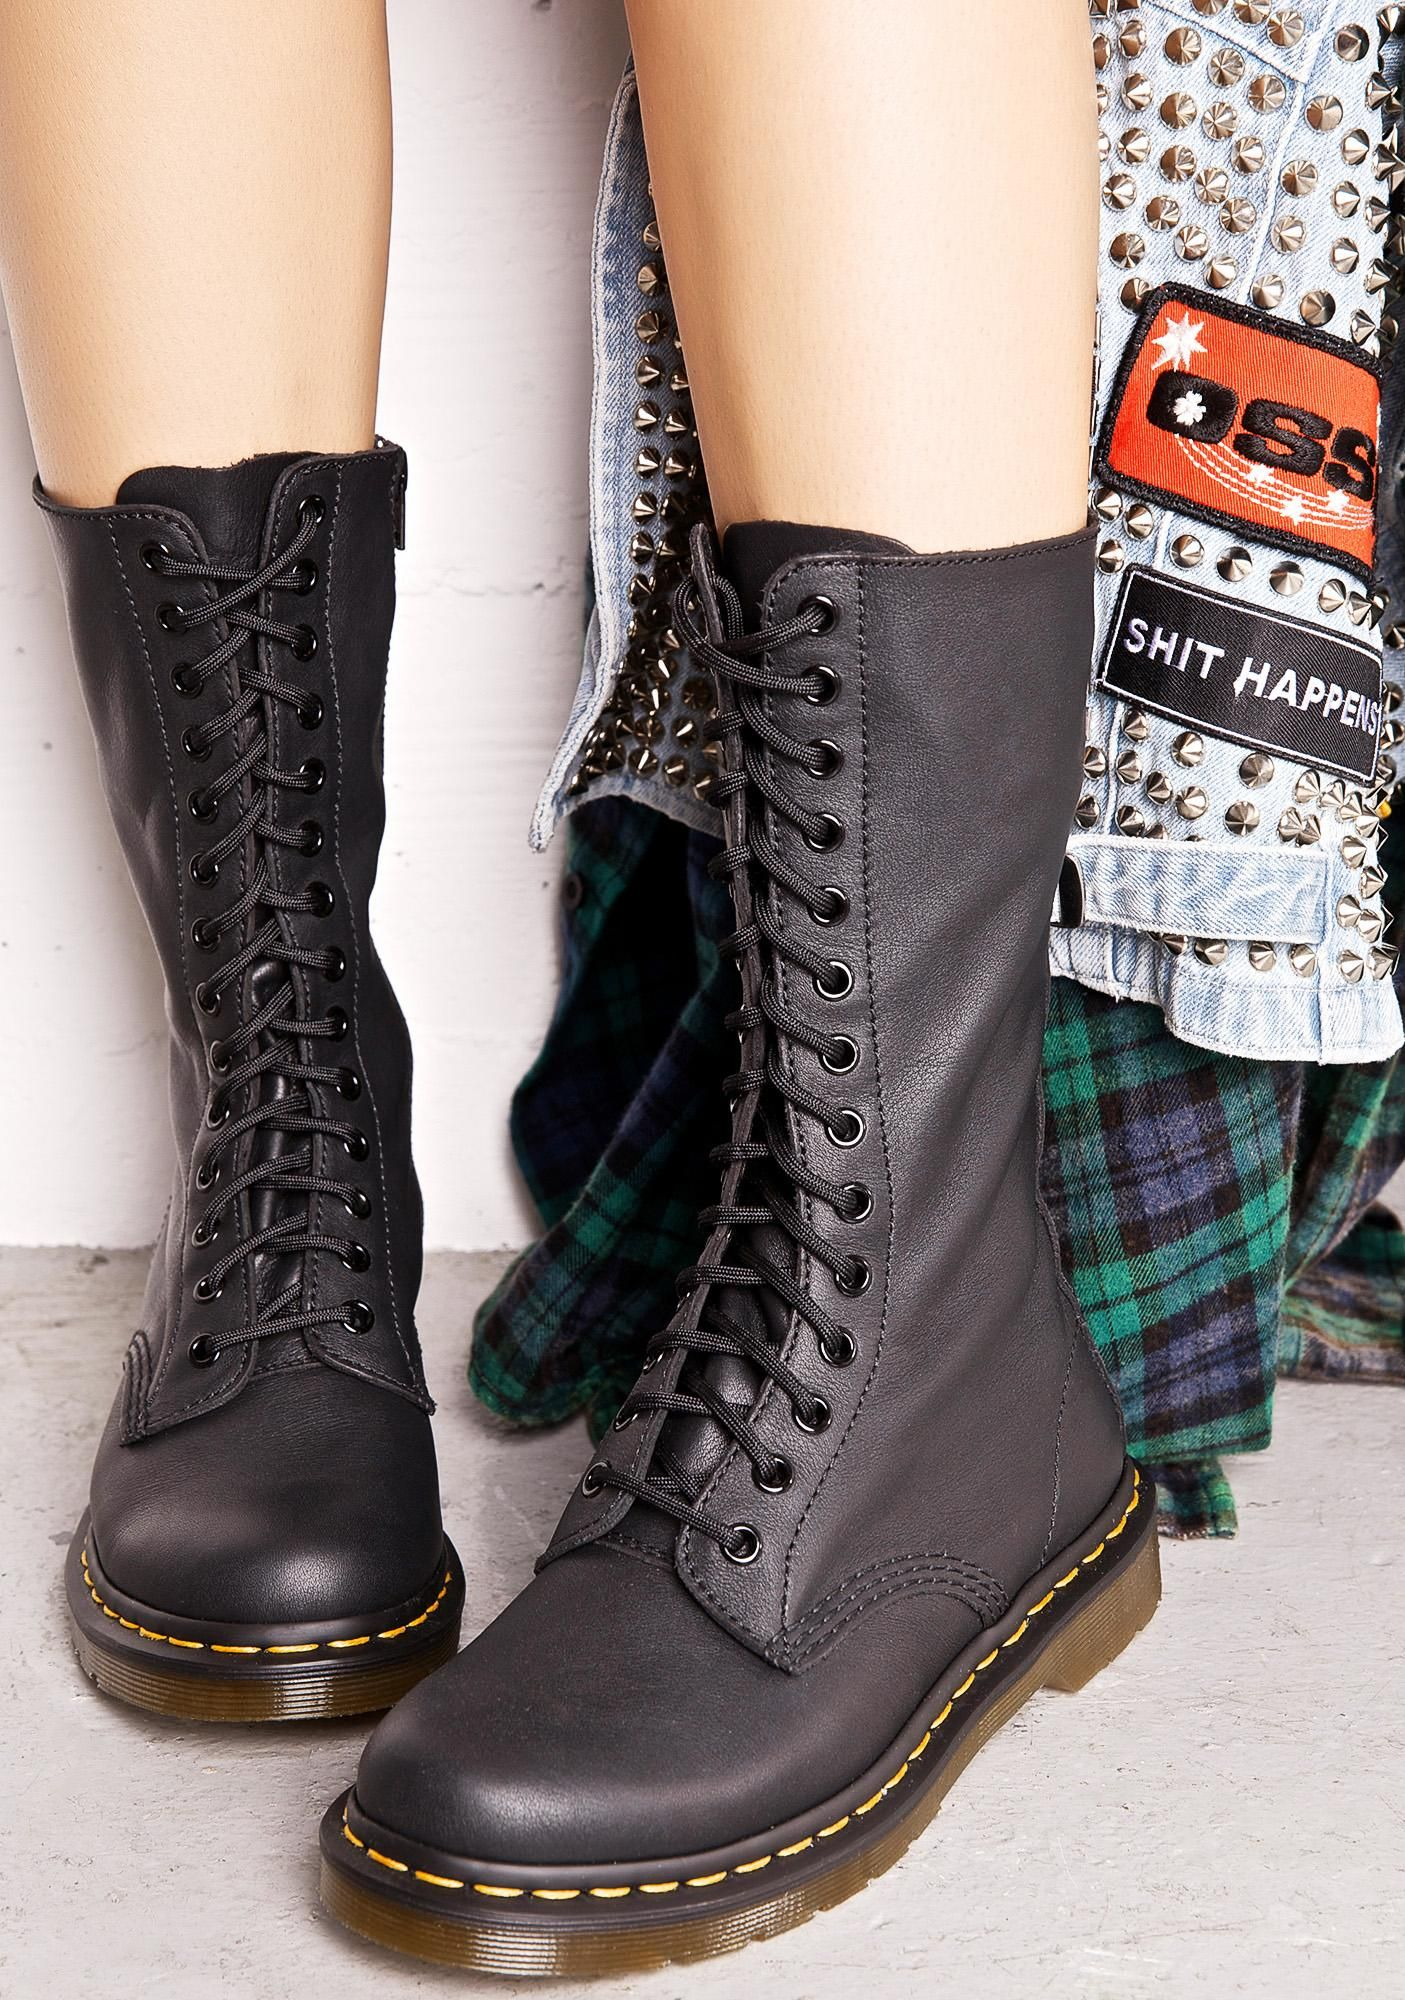 When is a Lace Up Combat Boot Too Similar to a Dr. Martens